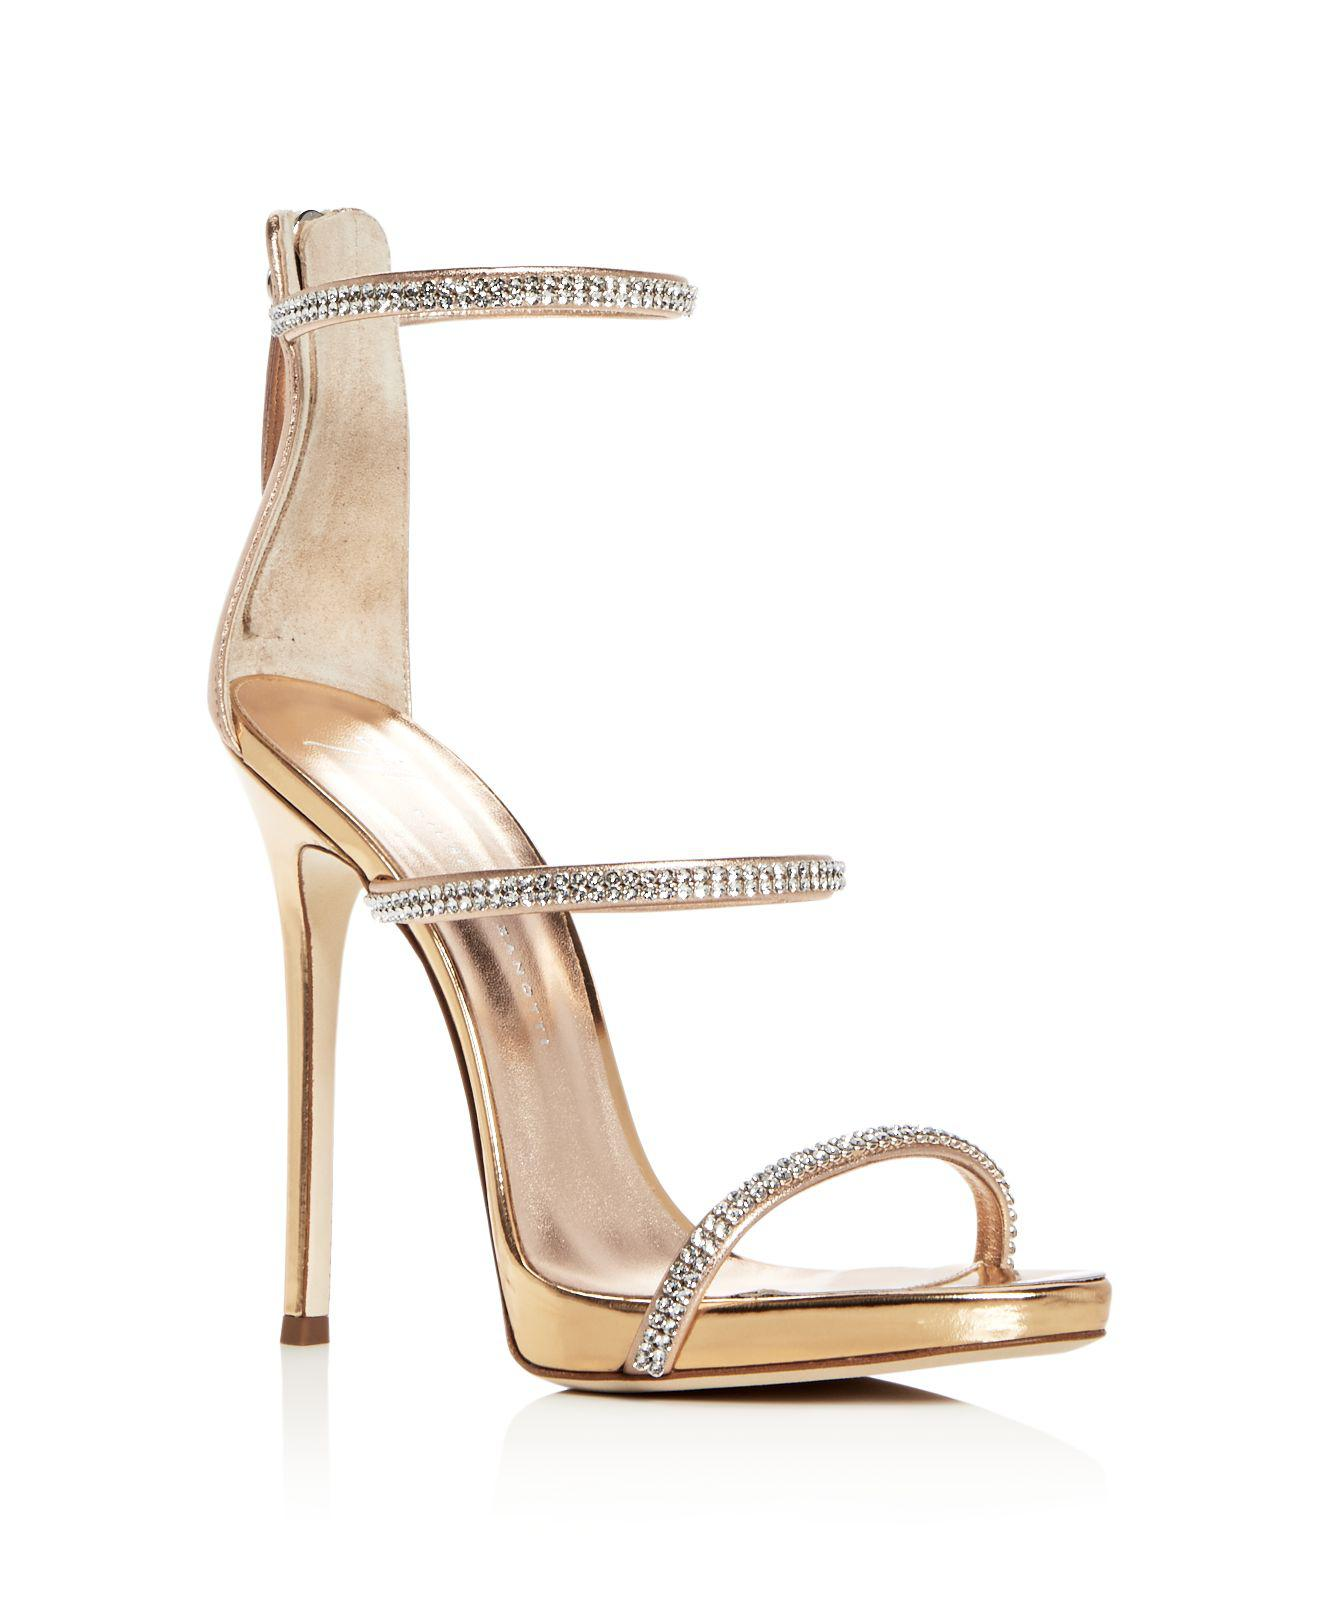 embellished strappy sandals - Metallic Giuseppe Zanotti Discount From China Clearance Online Official Site Shipping Discount Authentic Clearance Low Price Fee Shipping gSsPl1